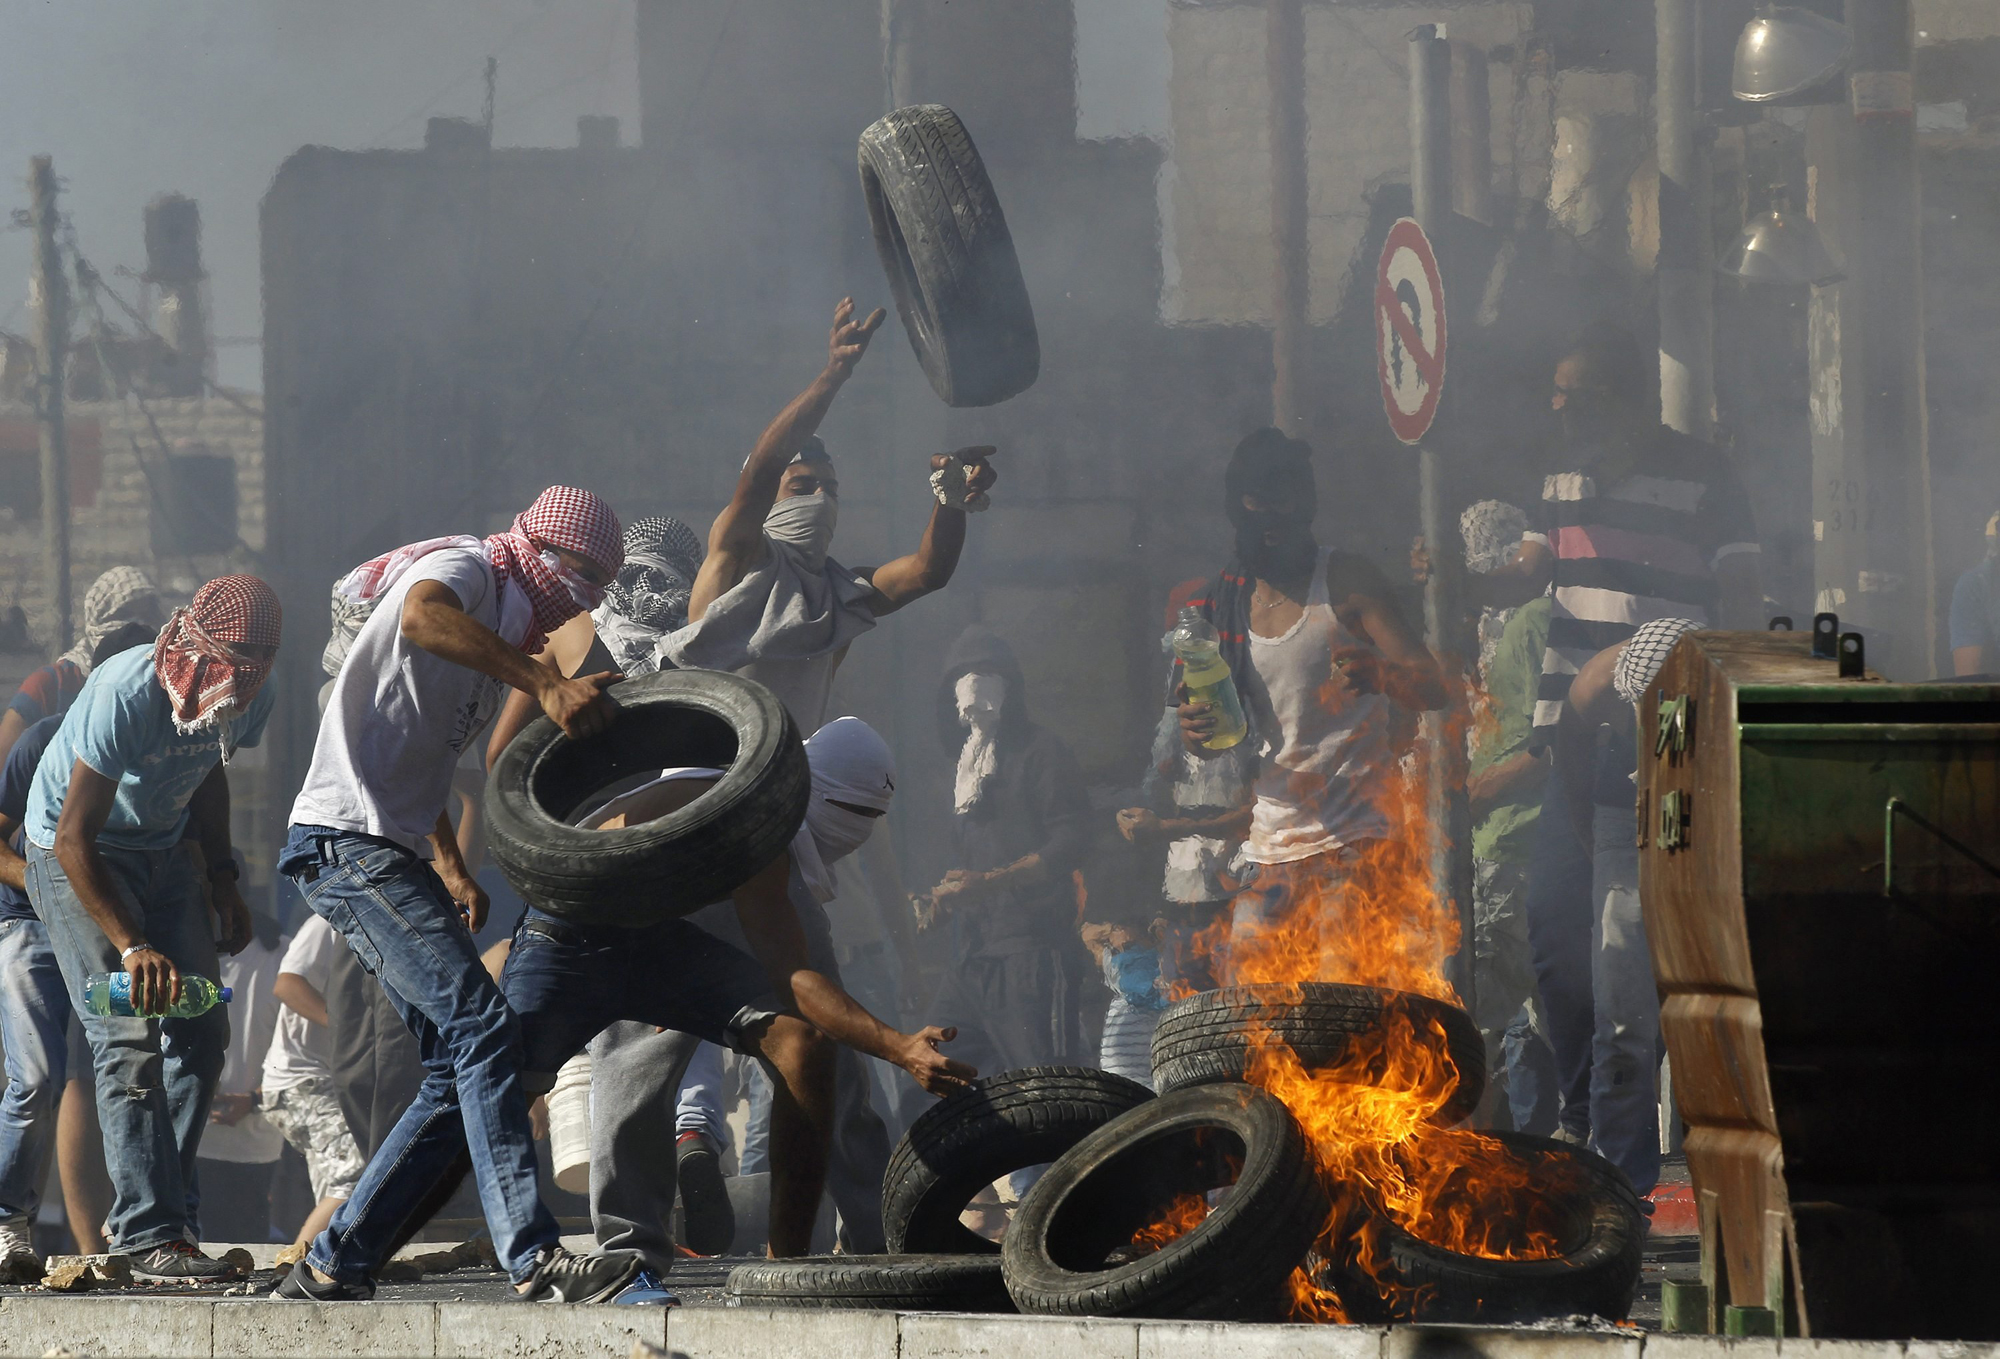 Palestinians set tyres ablaze during clashes with Israeli police in Shuafat, an Arab suburb of Jerusalem July 2.